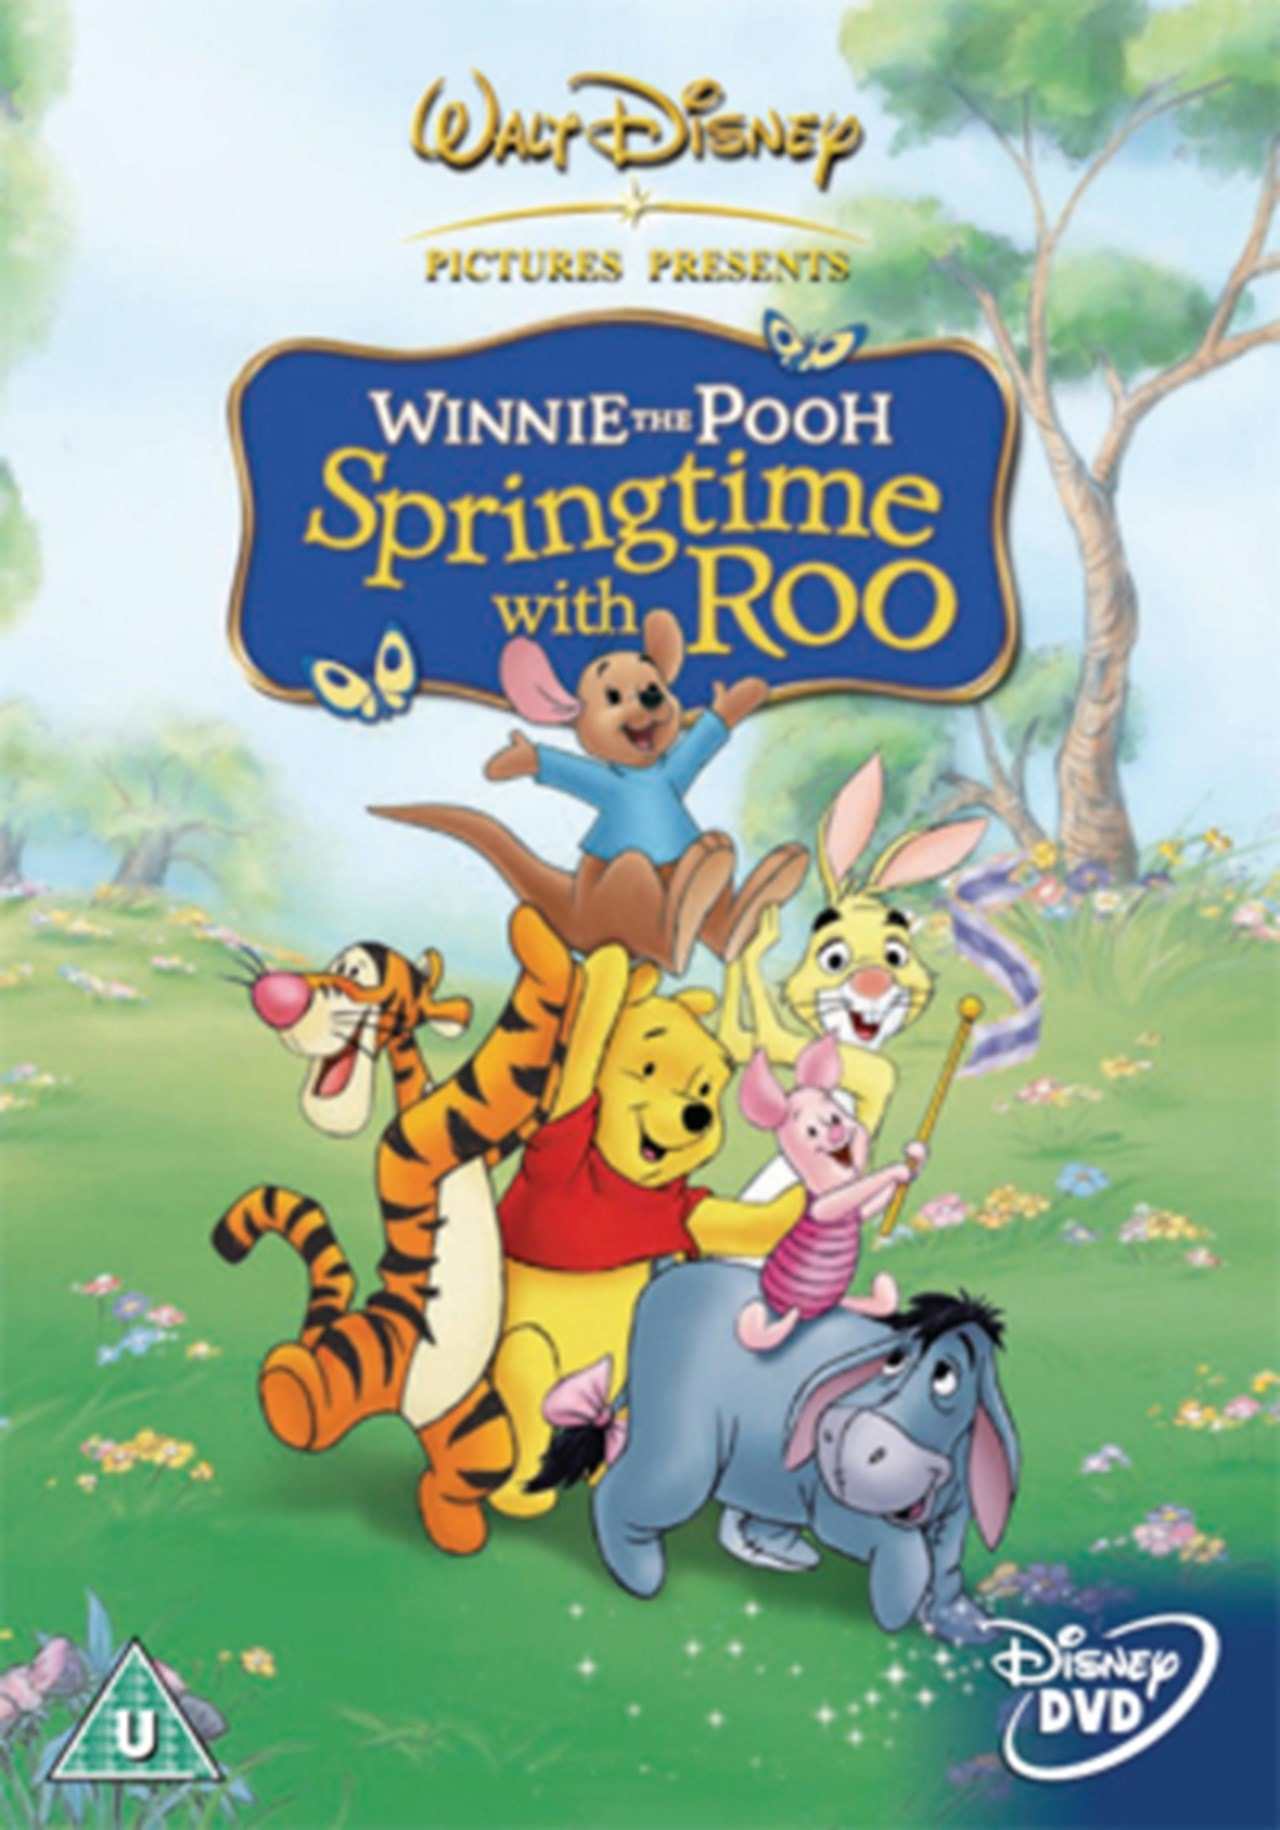 Winnie the Pooh: Springtime With Roo - 1